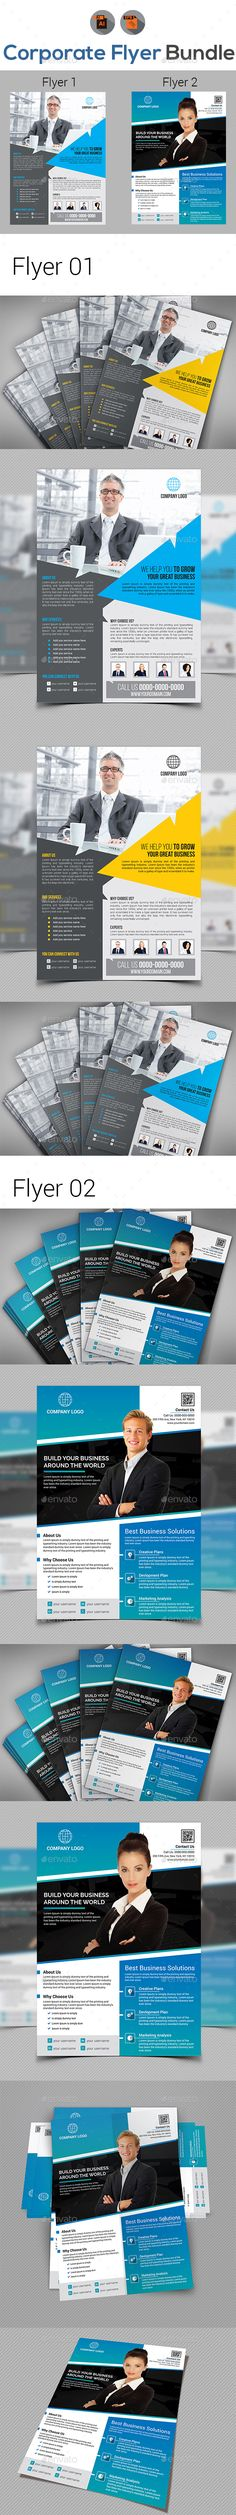 Business Flyers Bundle Templates Business Flyers, Business And   Business  Pamphlet Templates  Business Pamphlet Templates